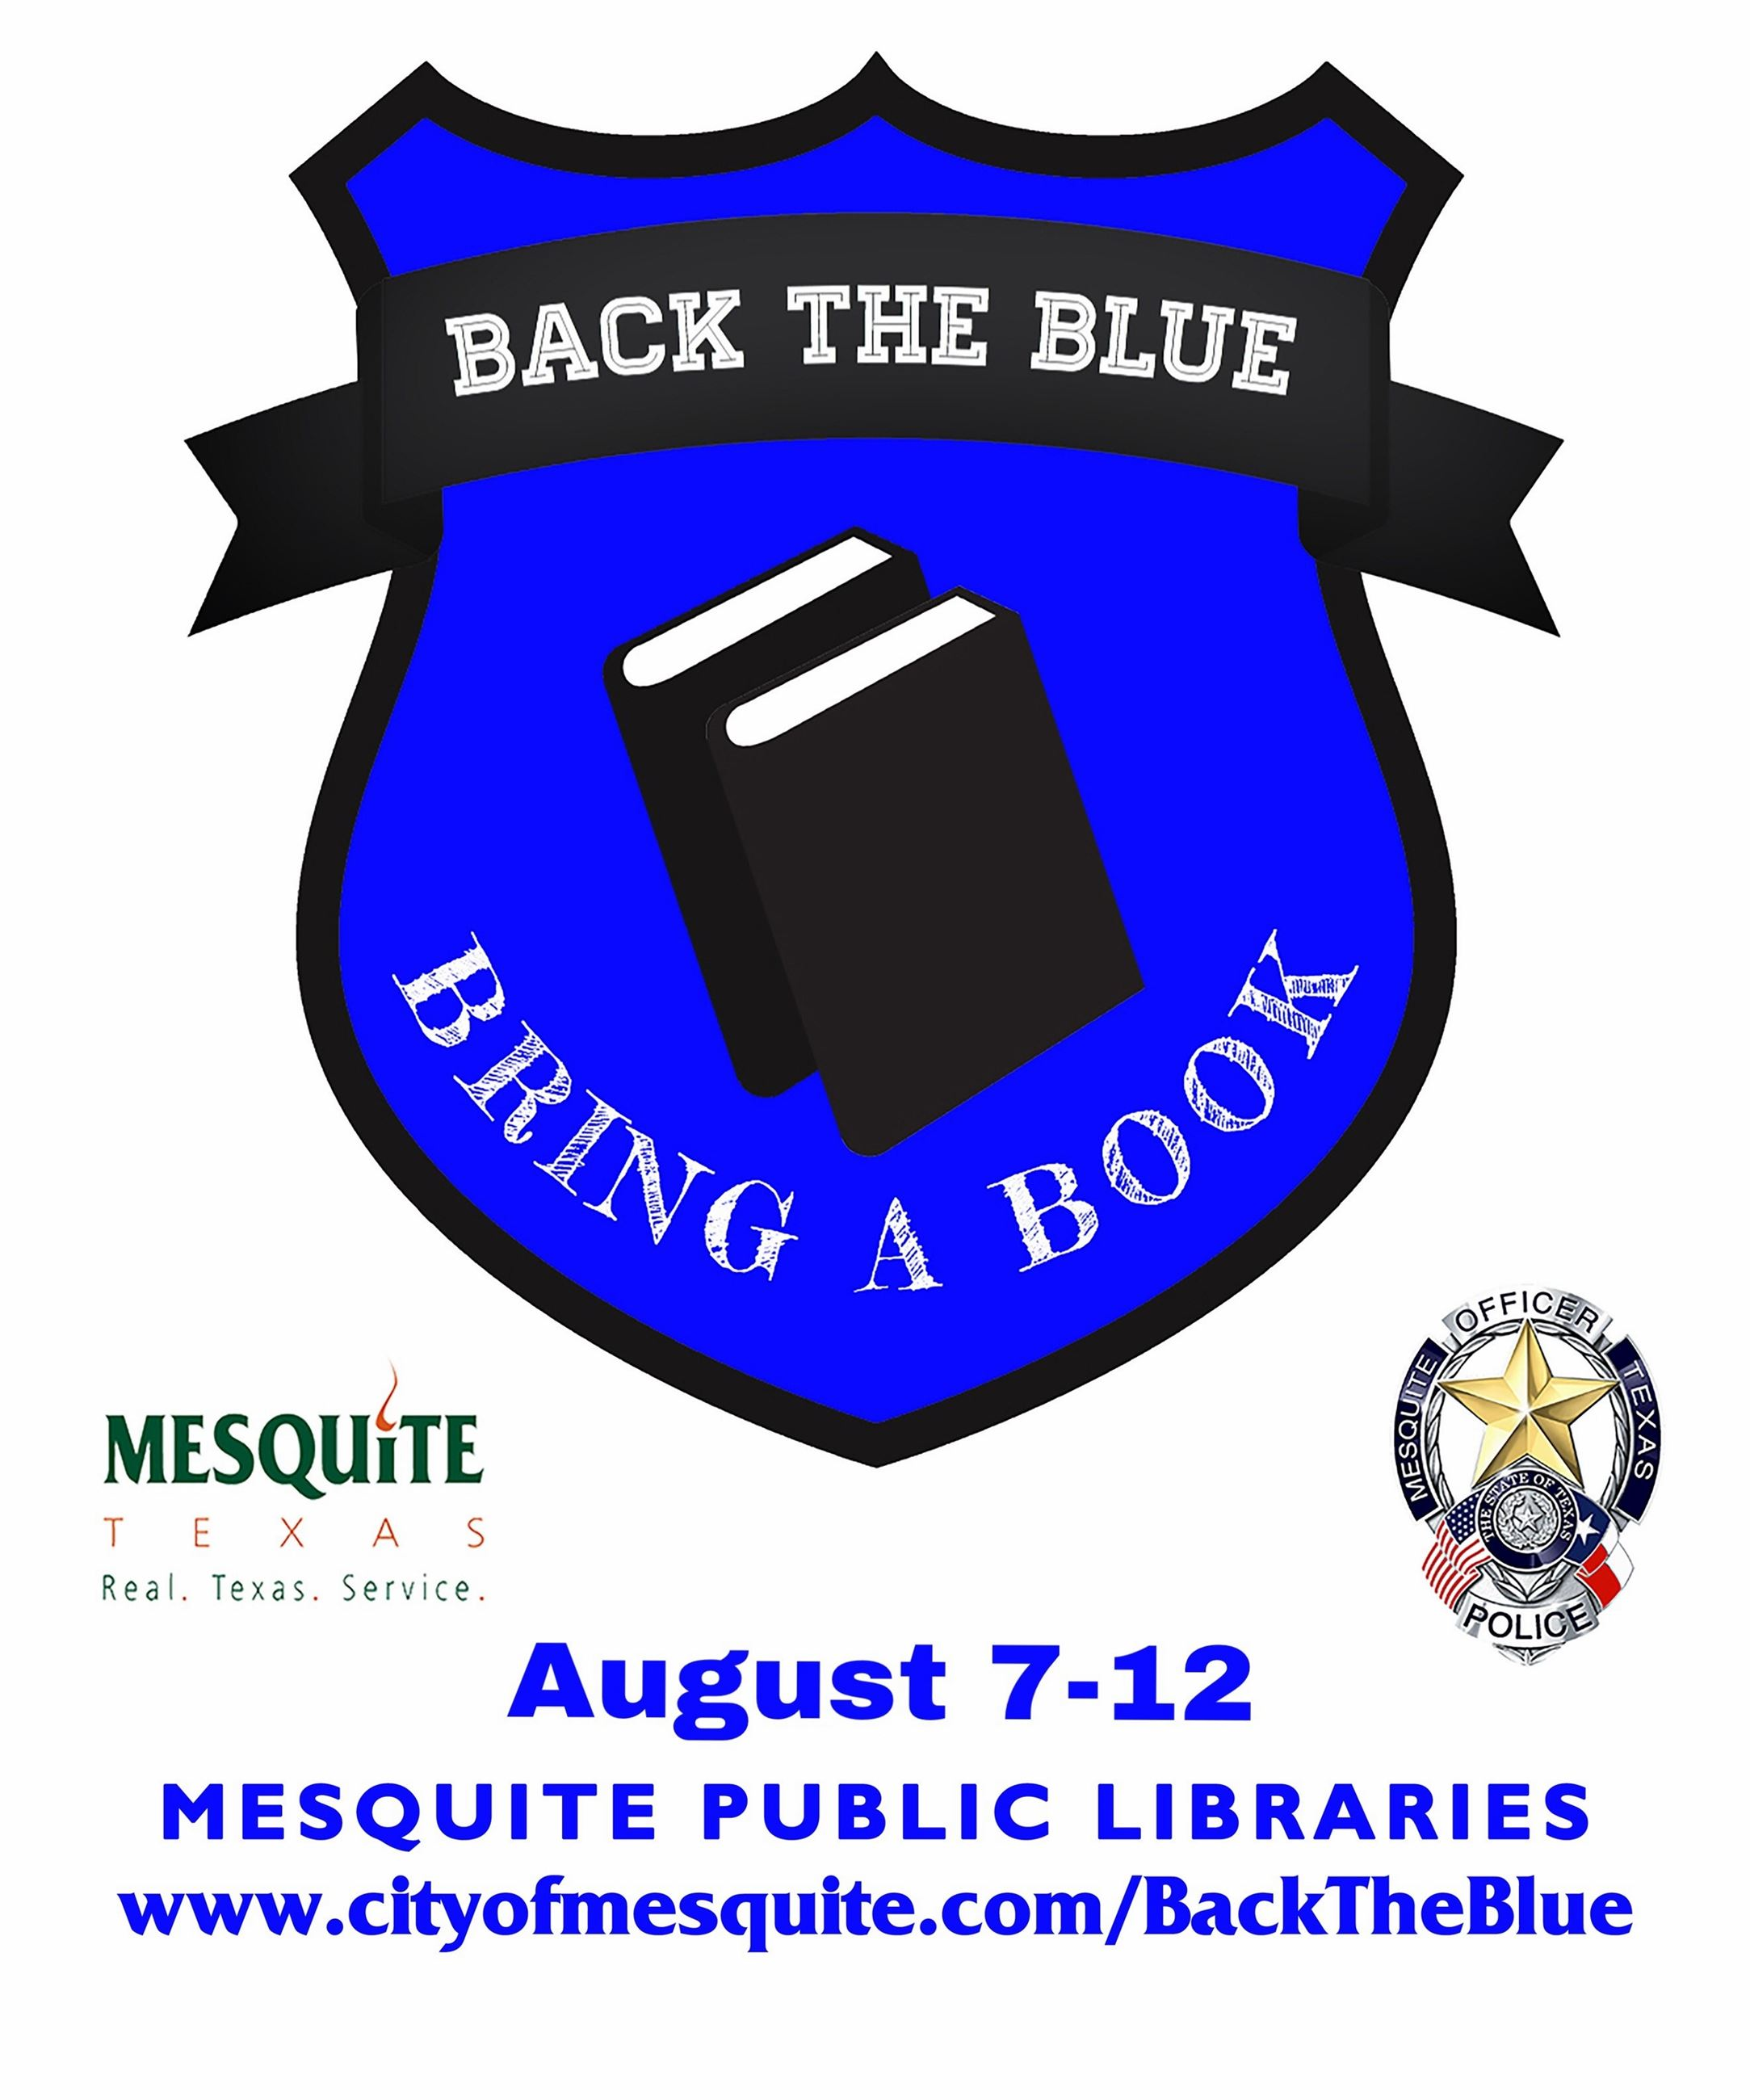 Back the Blue Bring a Book (2500x3000)